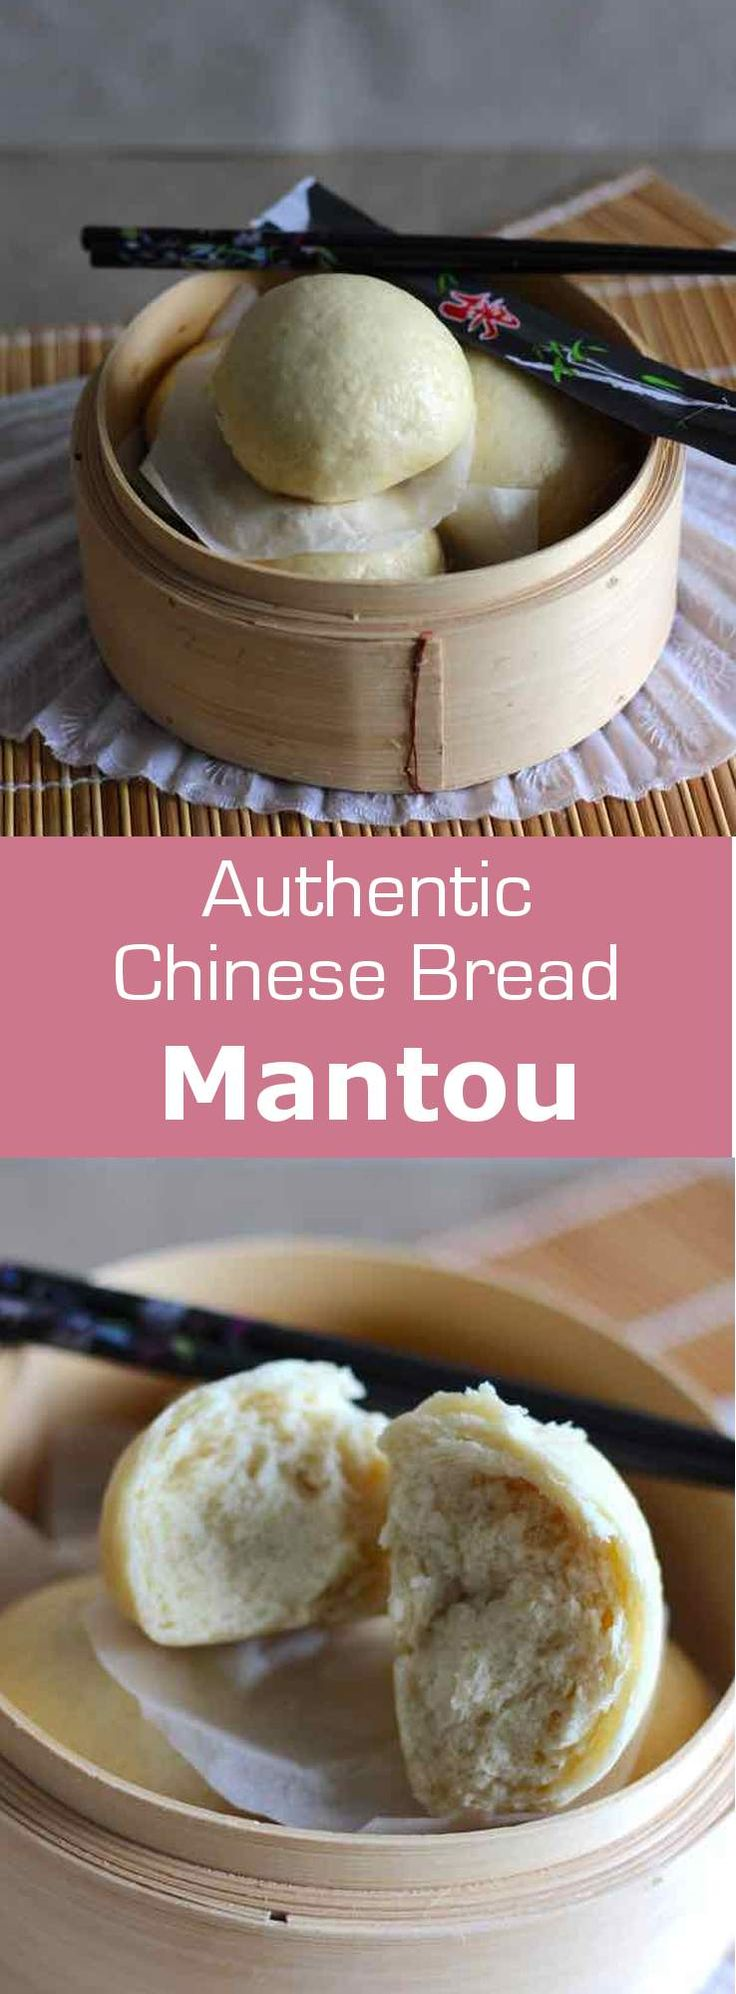 104 best 196 international vegetarian recipes images on pinterest mantou is a traditional chinese steamed bun it can be eaten plain or stuffed with asian food recipesindian forumfinder Gallery